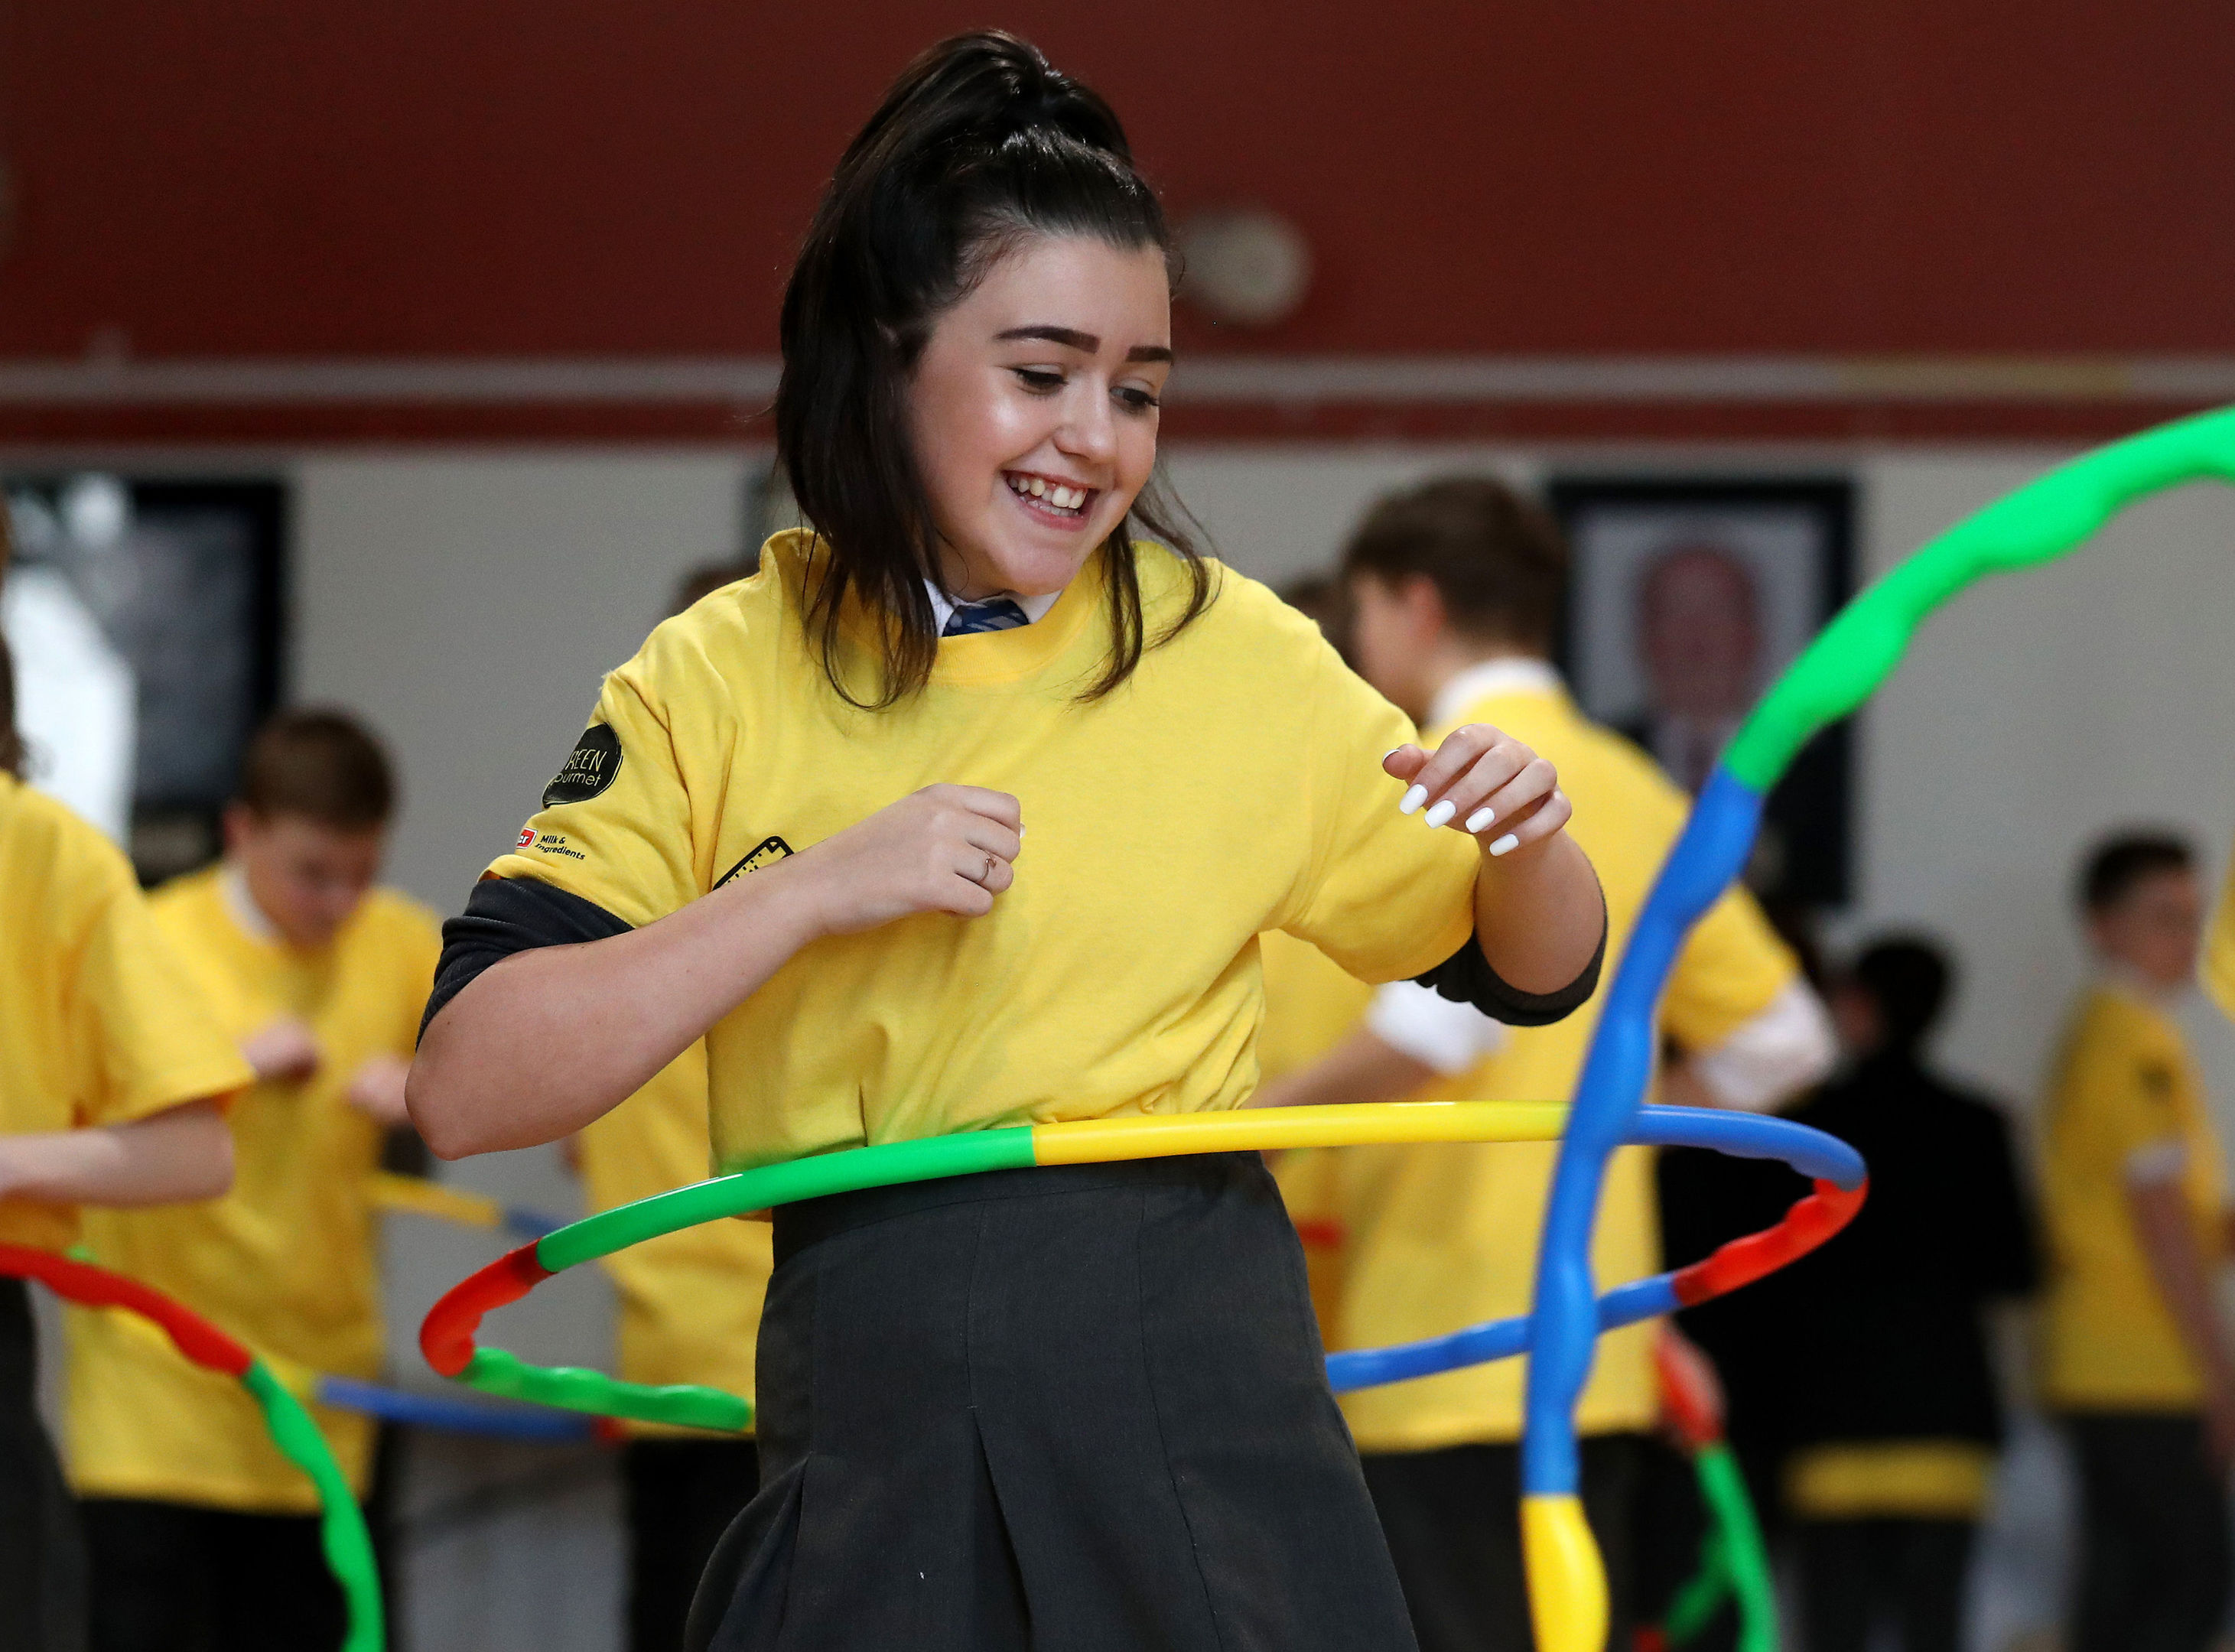 Bryonney Wilson-Gray joins her classmates in hula hoop exercise at  Holyrood Secondary School in Glasgow (Andrew Milligan/PA Wire)